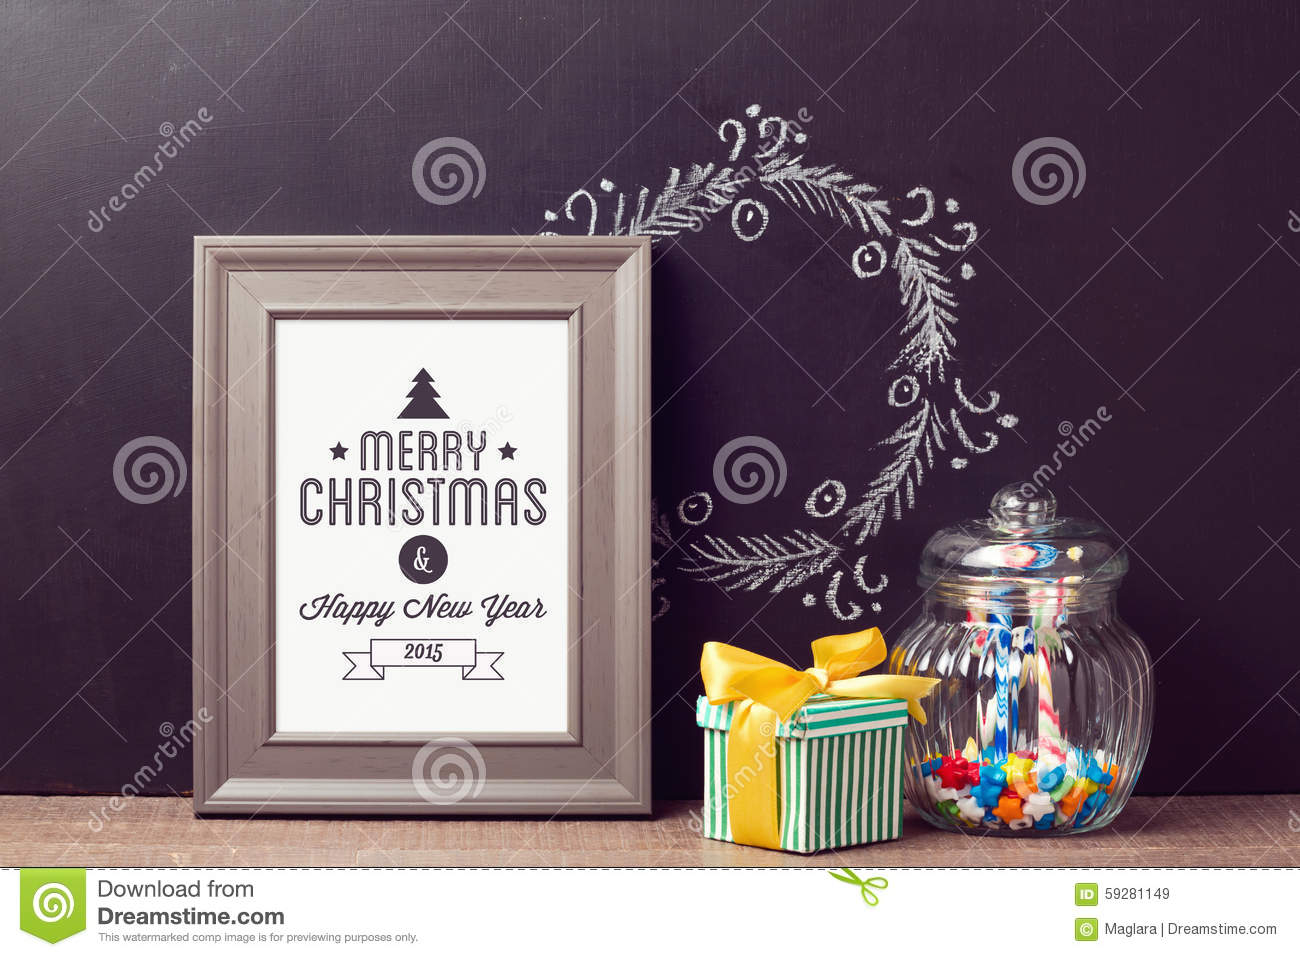 Free christmas poster design templates - Christmas Poster Mock Up Template With Candy Jar Over Chalkboard Background Stock Photo